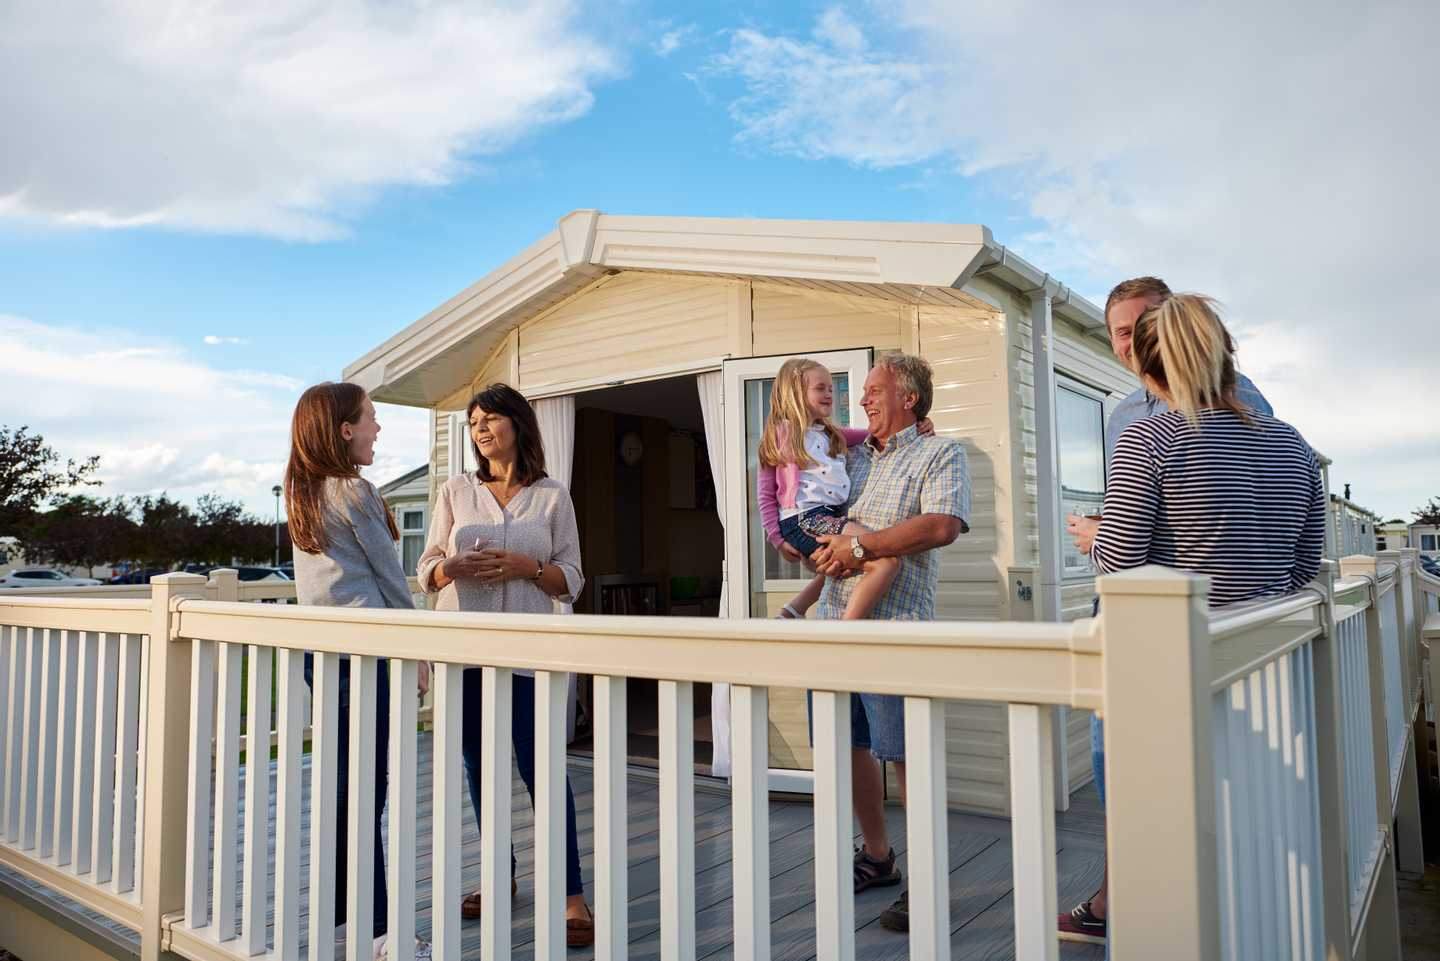 A family hanging out together on their veranda at Golden Sands